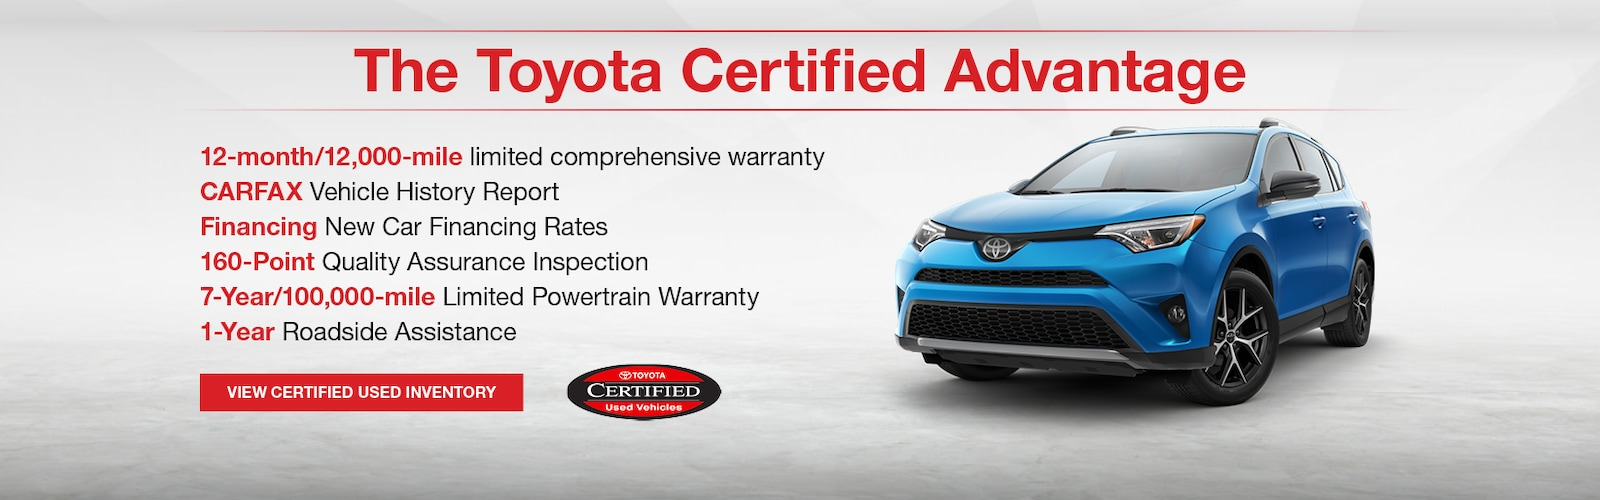 San Francisco Toyota   New 2018-2020 Toyota and Used Car Dealership